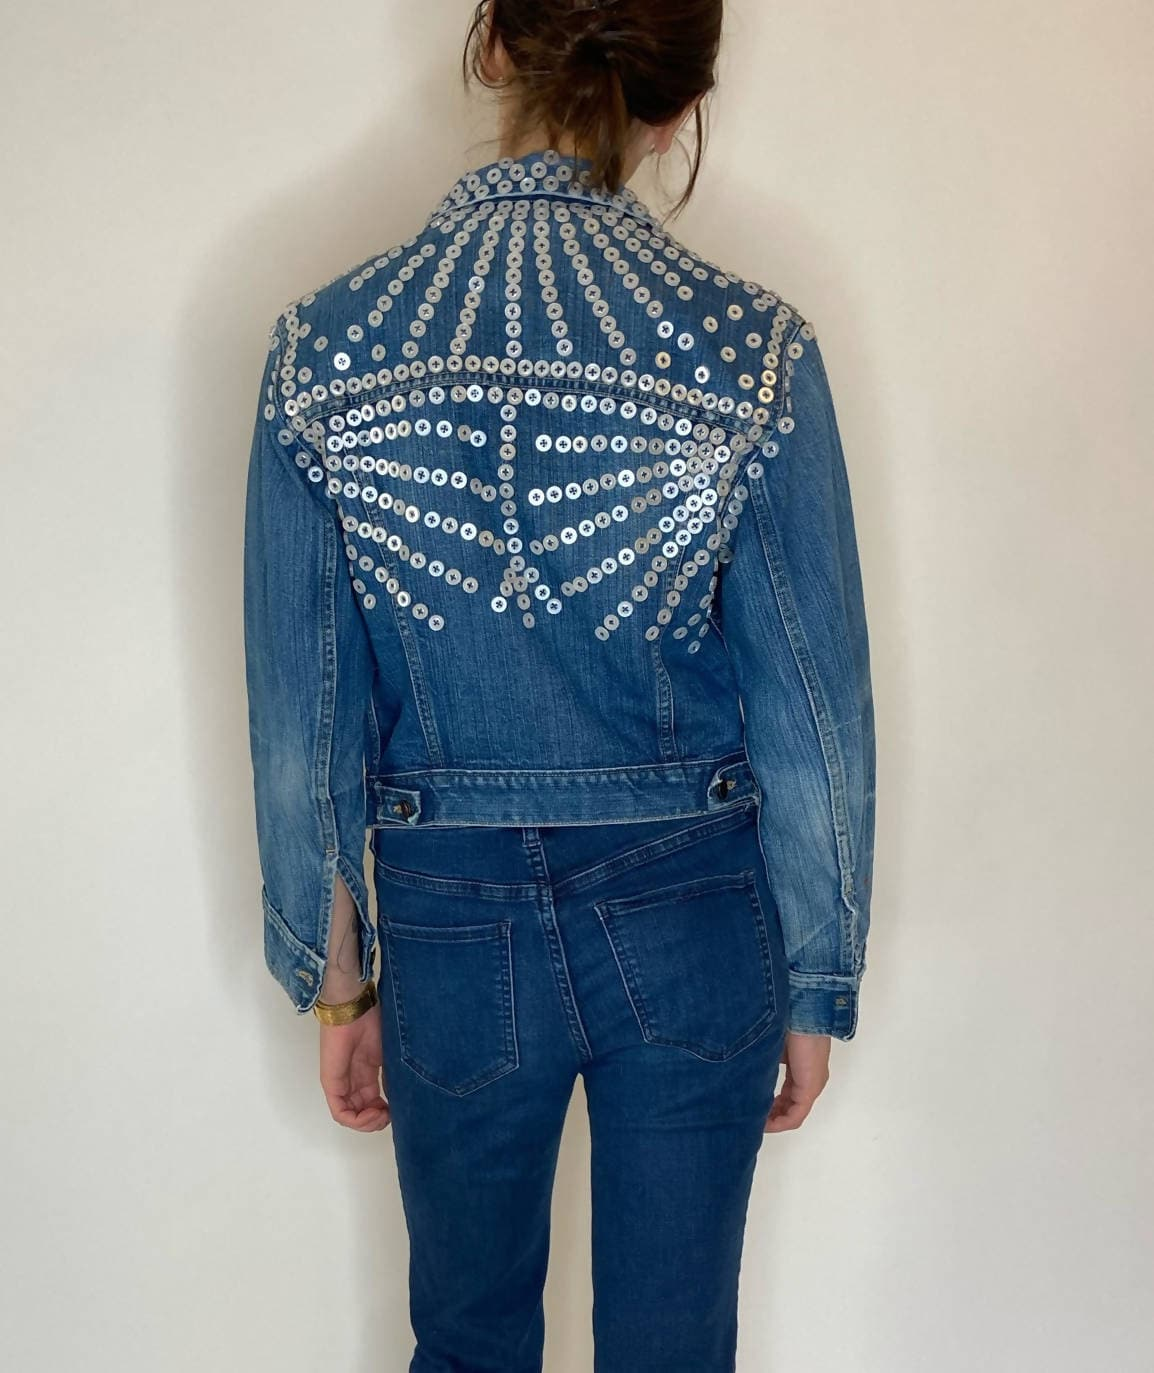 vintage denim trucker jacket with sunray pearl buttons